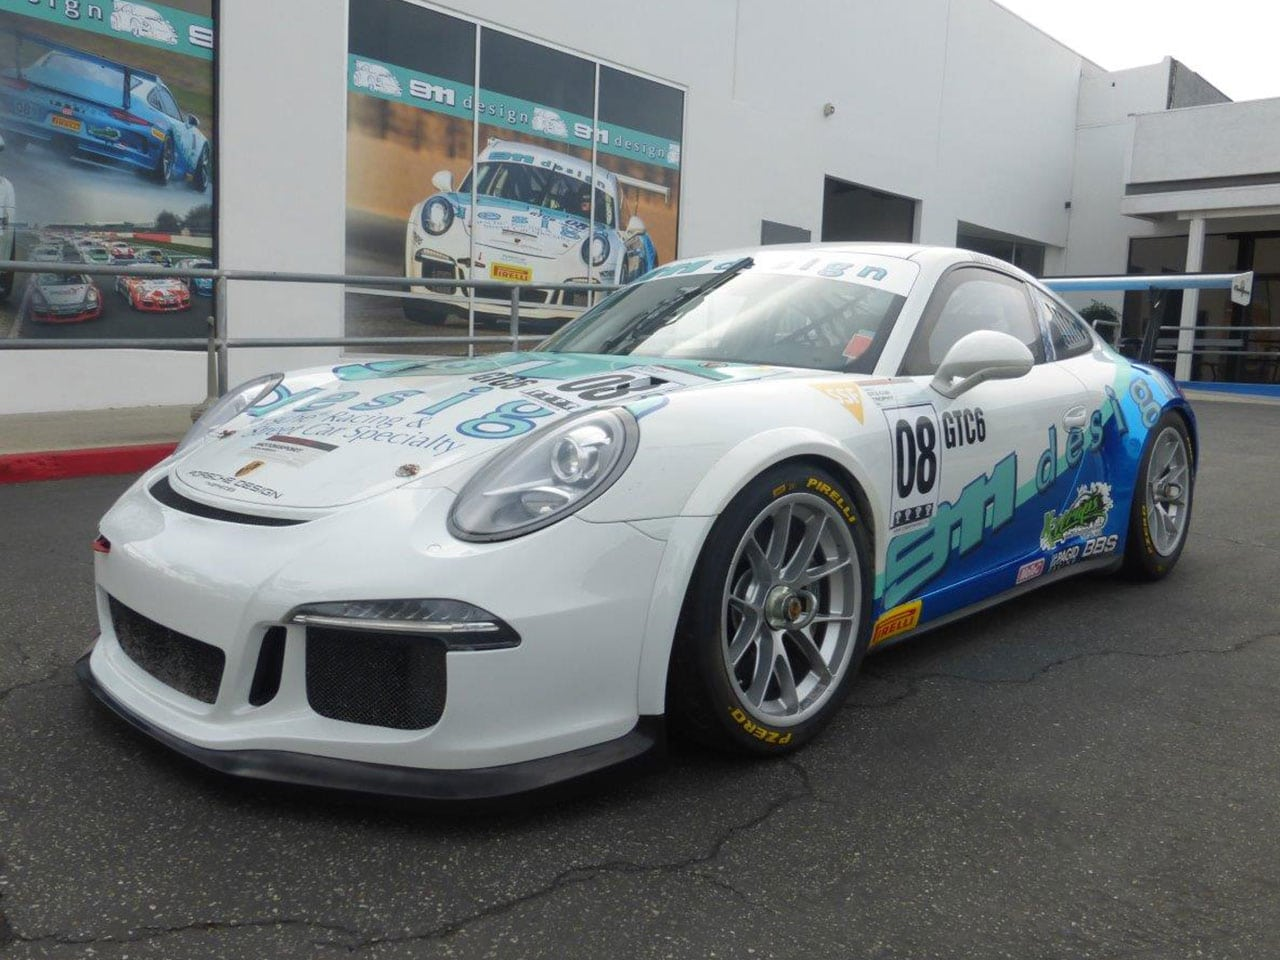 2014 porsche 991 gt3 cup car 911 design porsche. Black Bedroom Furniture Sets. Home Design Ideas